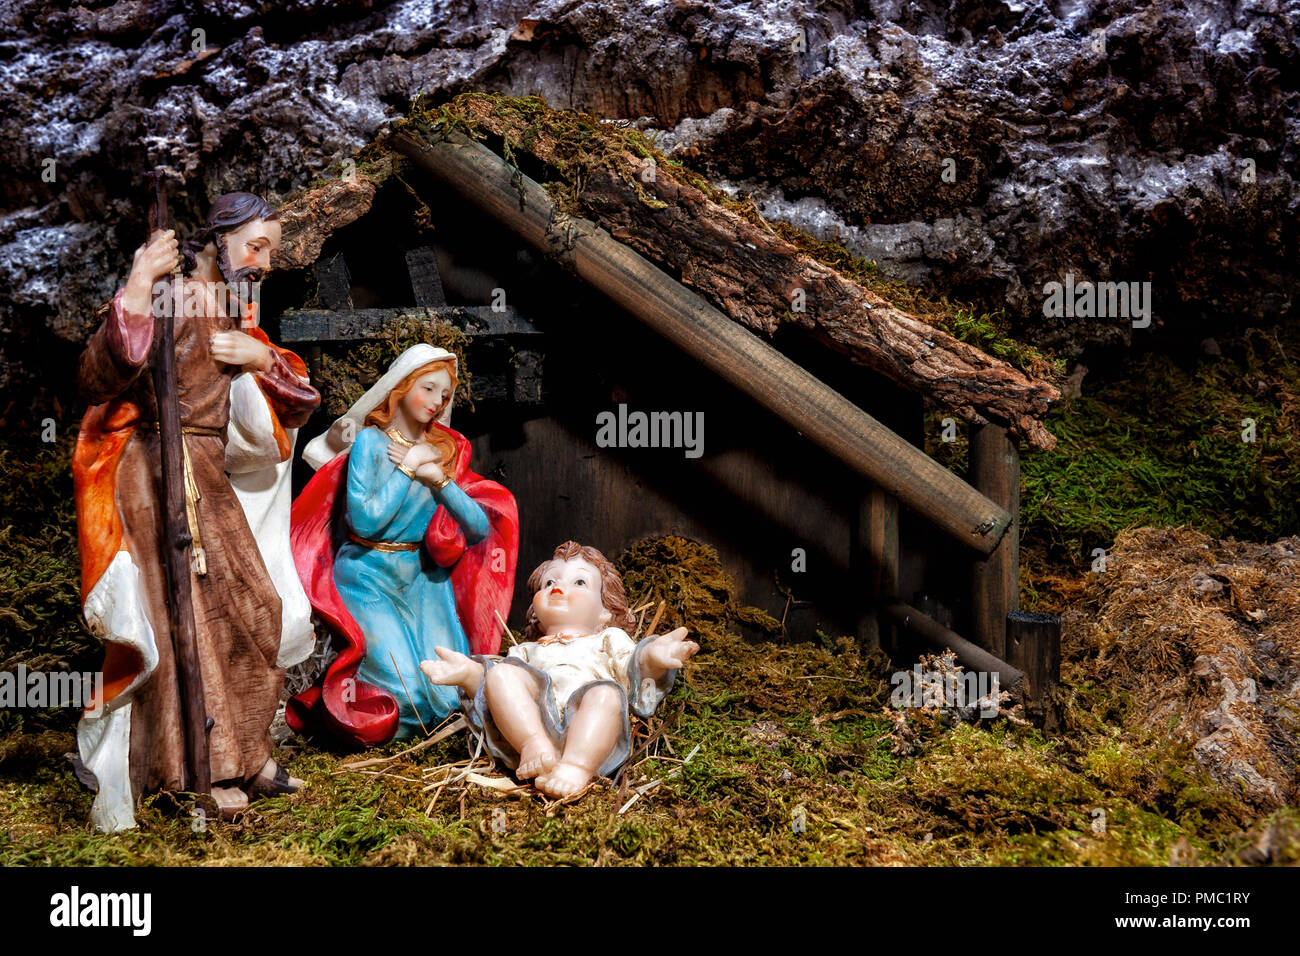 Close-up of the Christmas Nativity scene. Hut with baby Jesus in the manger, with Mary and Joseph Stock Photo